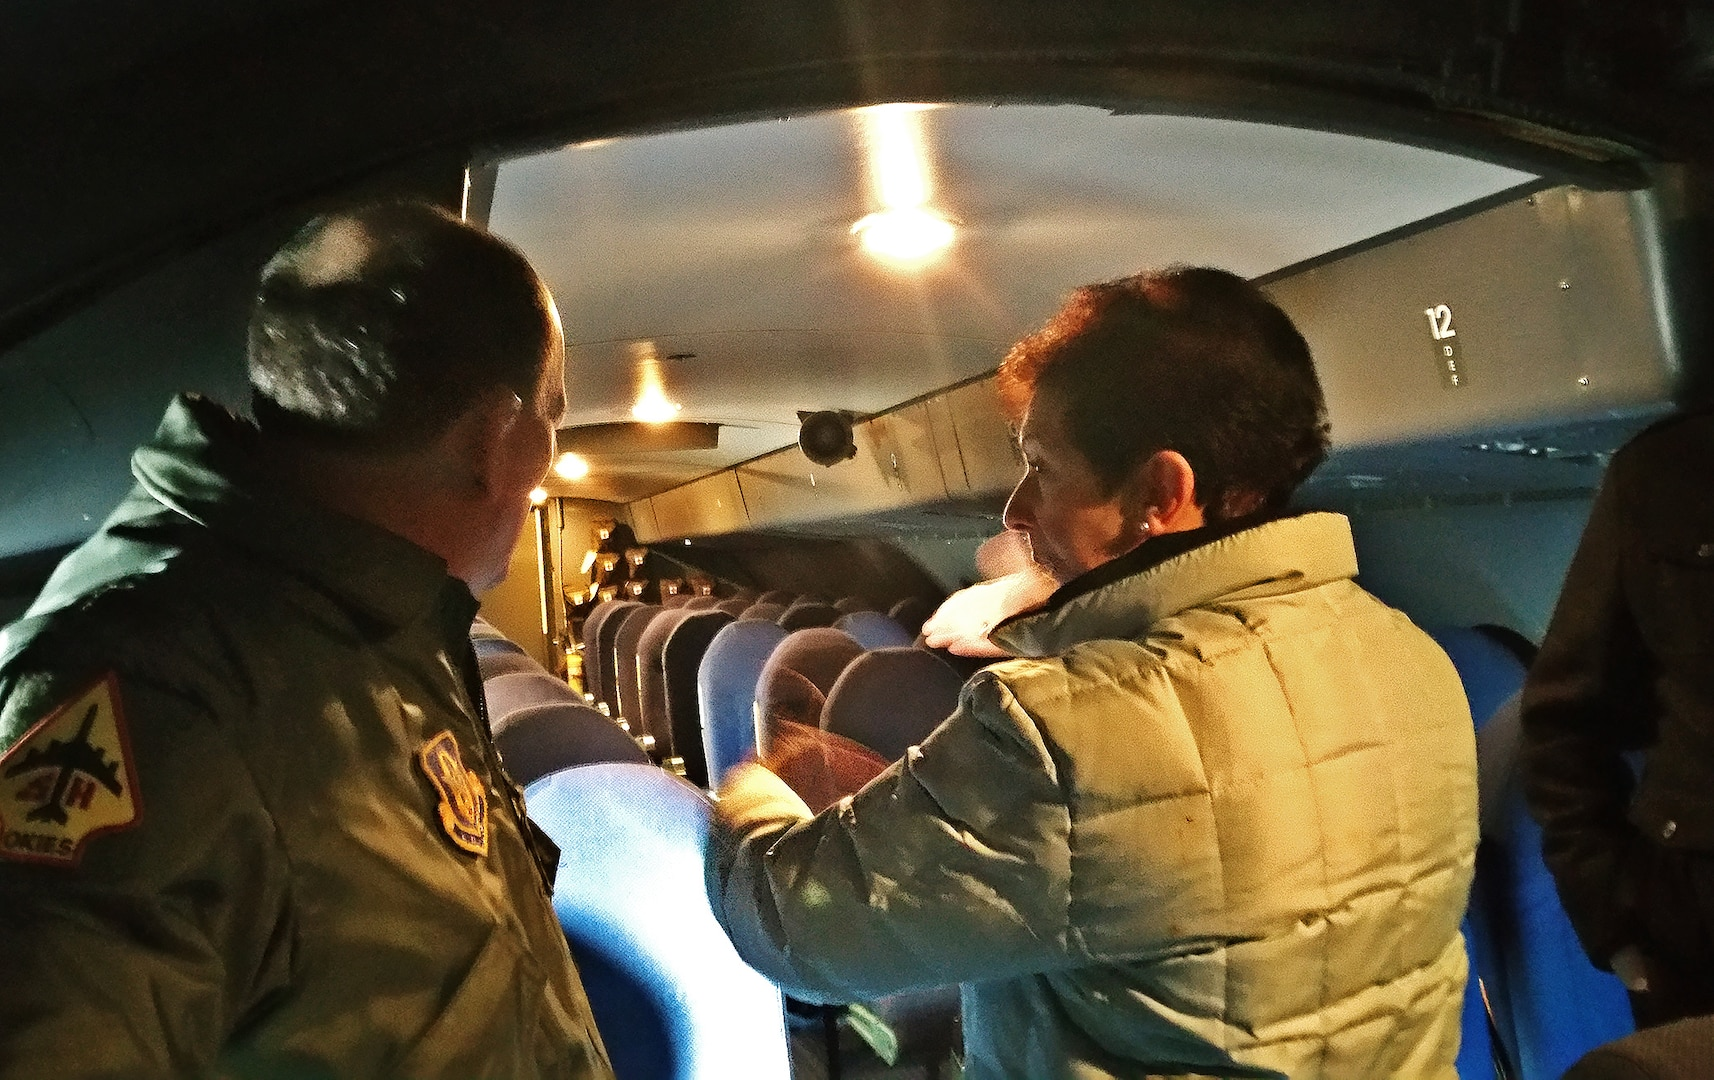 """Retired Col. Regina Aune, right, describes to Col. Thomas K. Smith, 433rd Airlift Wing commander, Dec. 19, 2016, how the children were bedded down in the overhead troop compartment of the aircraft, during """"Operation Babylift."""" Aune was on the first military aircraft to Vietnam to bring the refugees to the United States. """"Operation Babylift"""" was a combined effort between the United States, Canada, Australia and France, to evacuate more than 3,300 refugees from South Vietnam. (U.S. Air Force photo by Minnie Jones)"""